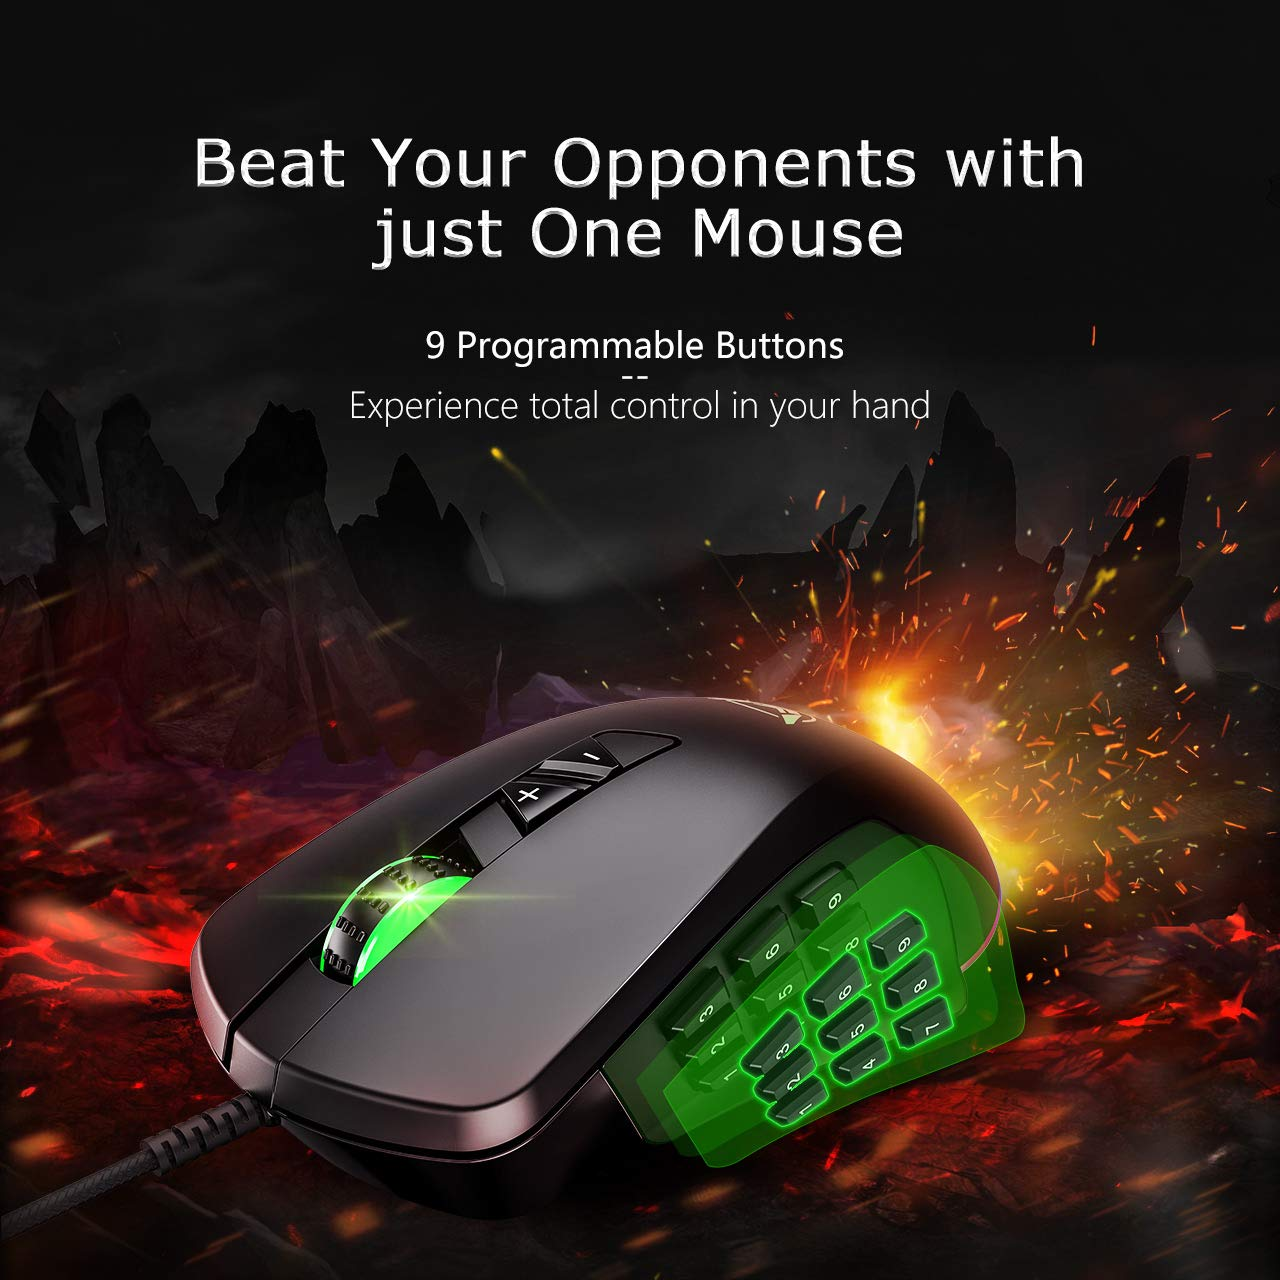 PICTEK MMO Gaming Mouse, 4 Magnetic Interchangeable Side Plates – 24,000 Adjustable DPI Optical, High Precision, PMW3360 Advanced Gaming Sensor – Customizable RGB Backlit for Windows PC Games – Black